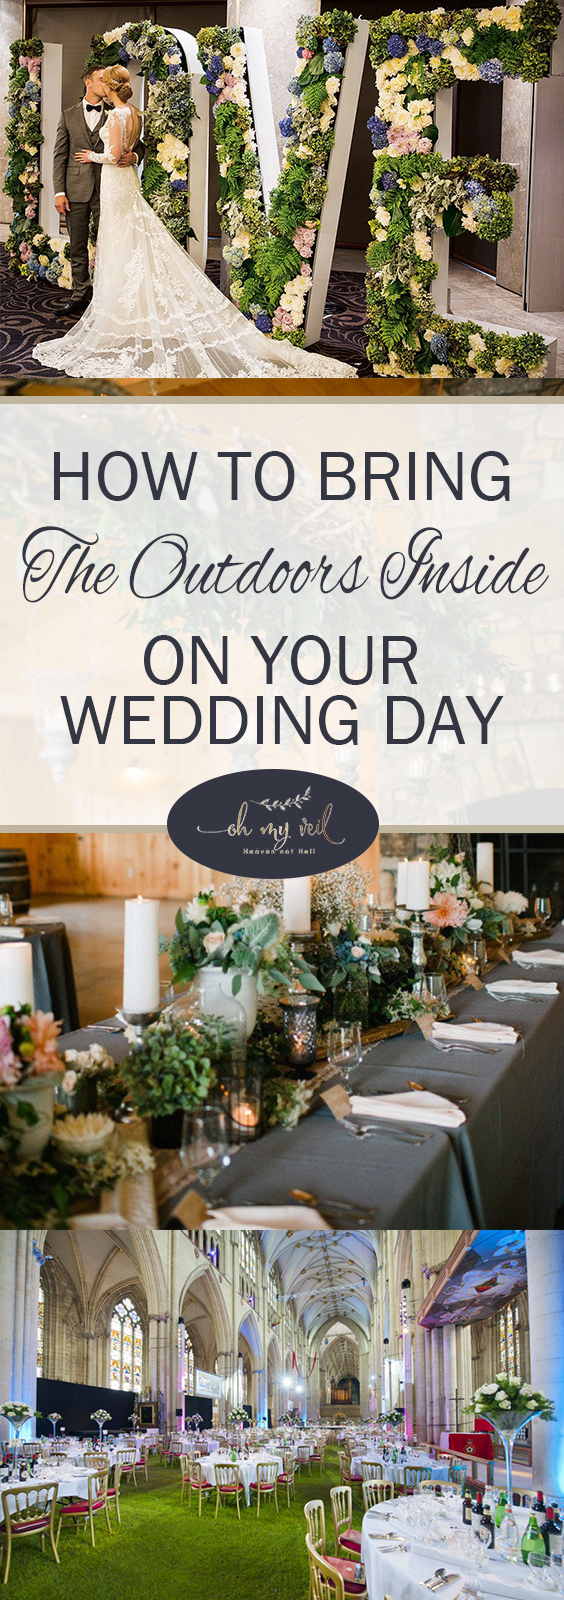 Wedding Decor, Outdoor Weddings, Outdoor Wedding Decor, How to Decorate For Outdoor Weddings, Outdoor Wedding Tips and Tricks, Weddings, Dream Weddings, Pinterest Weddings, Easy Wedding DIYs, Popular Pin